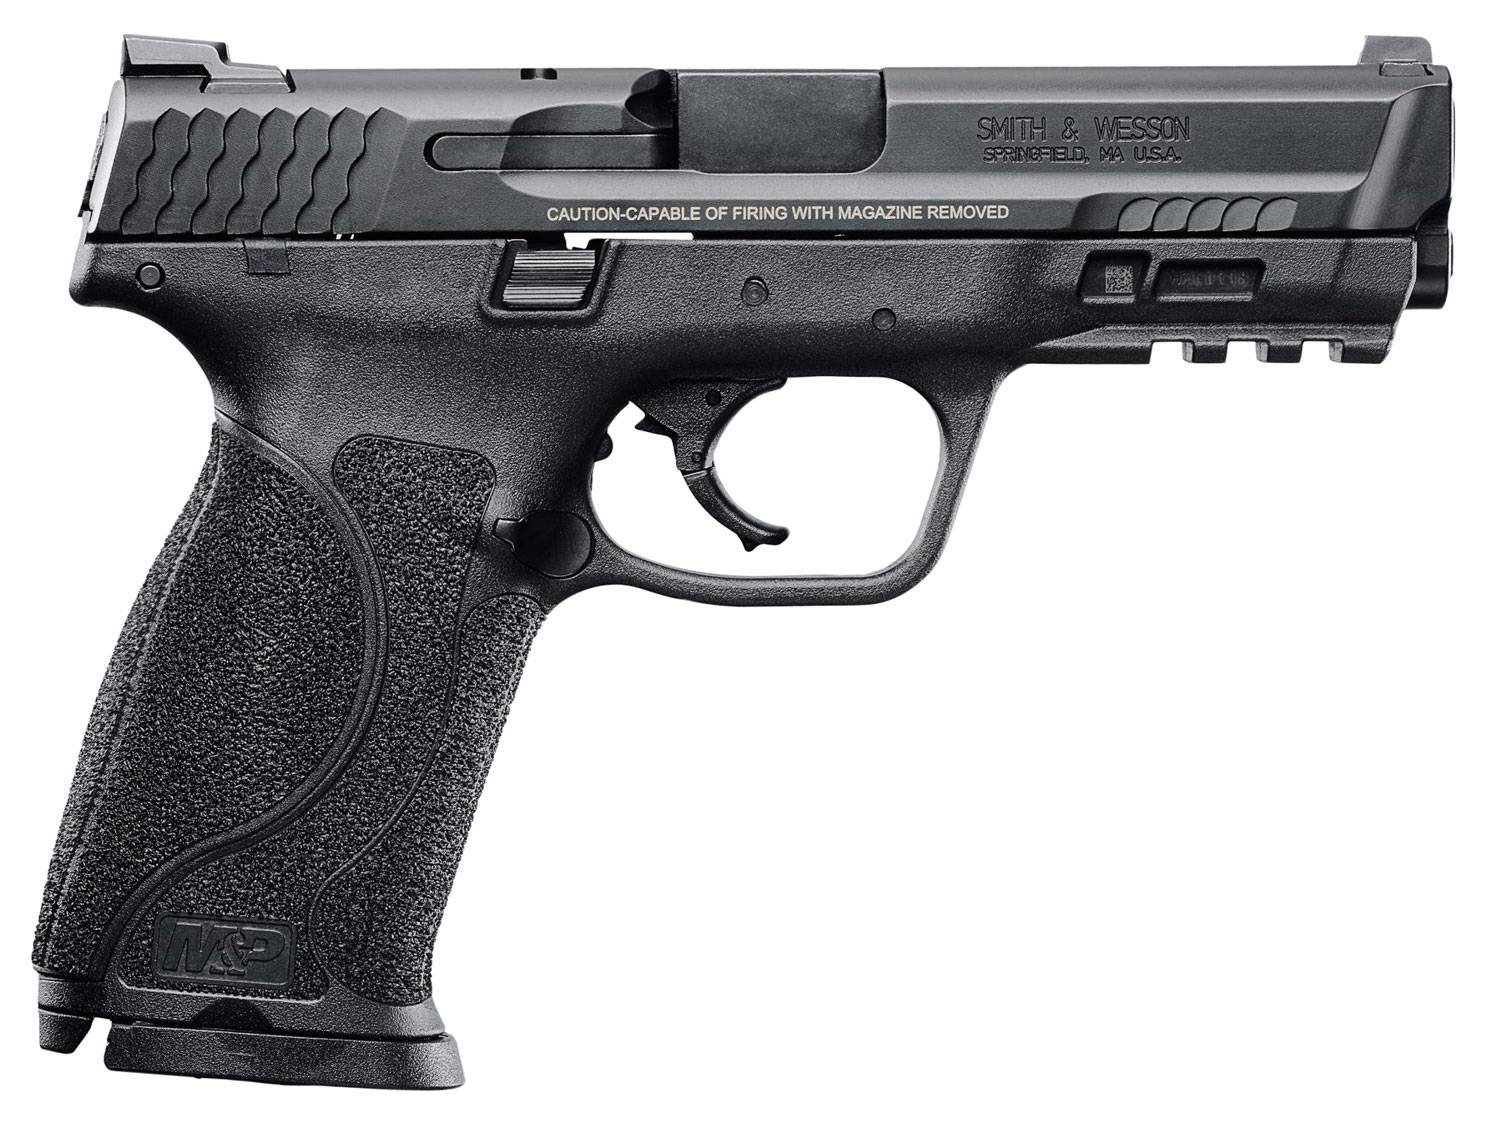 Smith & Wesson 11522 M&P 40 M2.0 Double 40 Smith & Wesson (S&W) 4.25